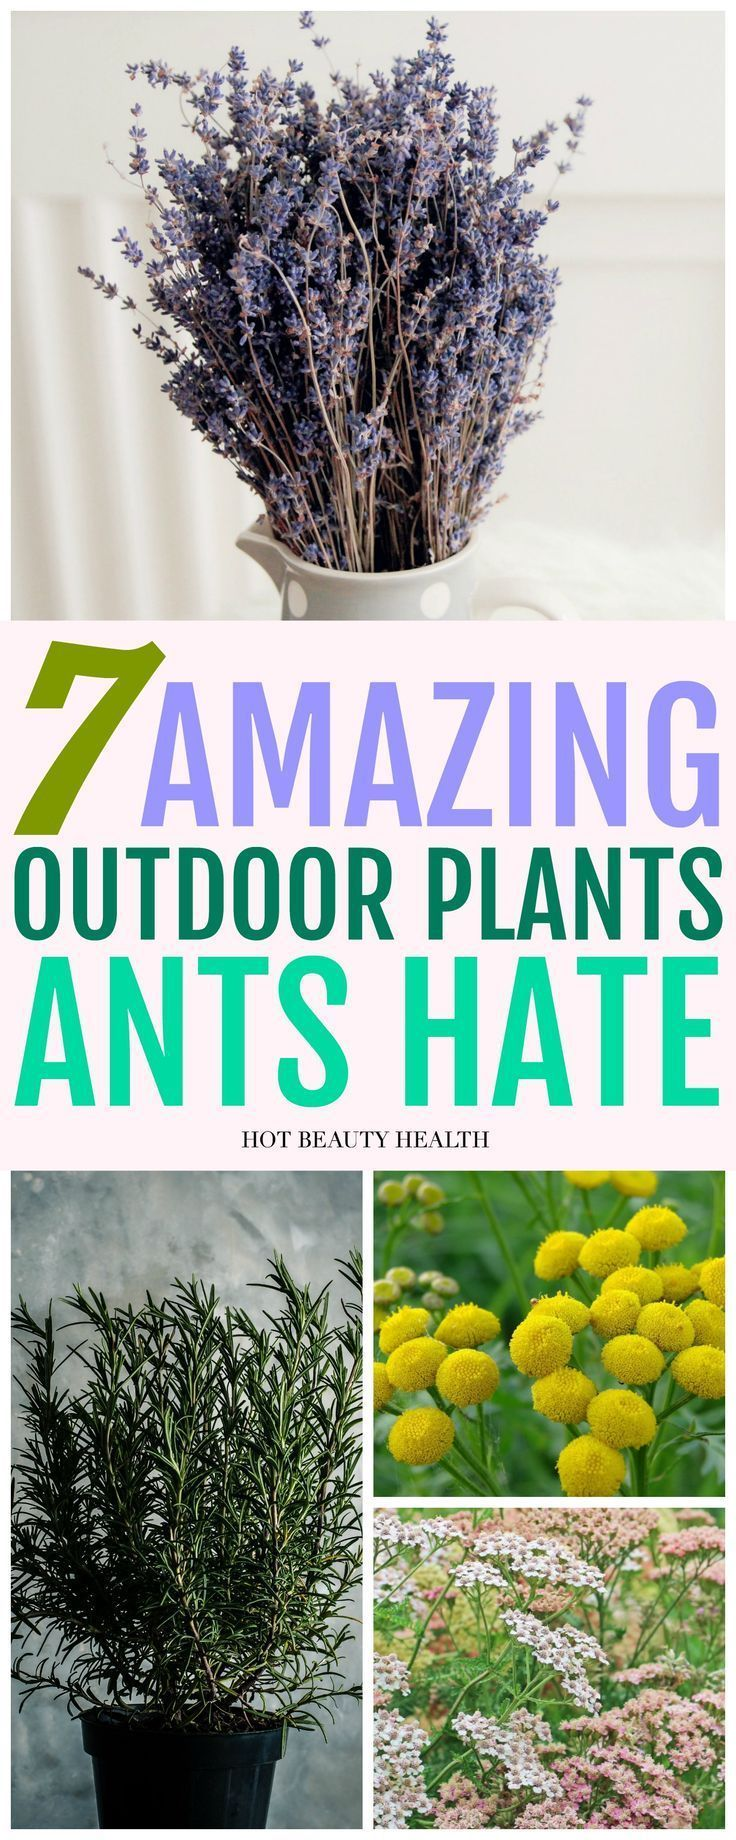 These Ant Repellent Plants Are Great Gardening Hacks For Your Home They Re Also A Lot Of Safer Than Toxic Sprays And Wi Outdoor Pflanzen Gartenarbeit Pflanzen